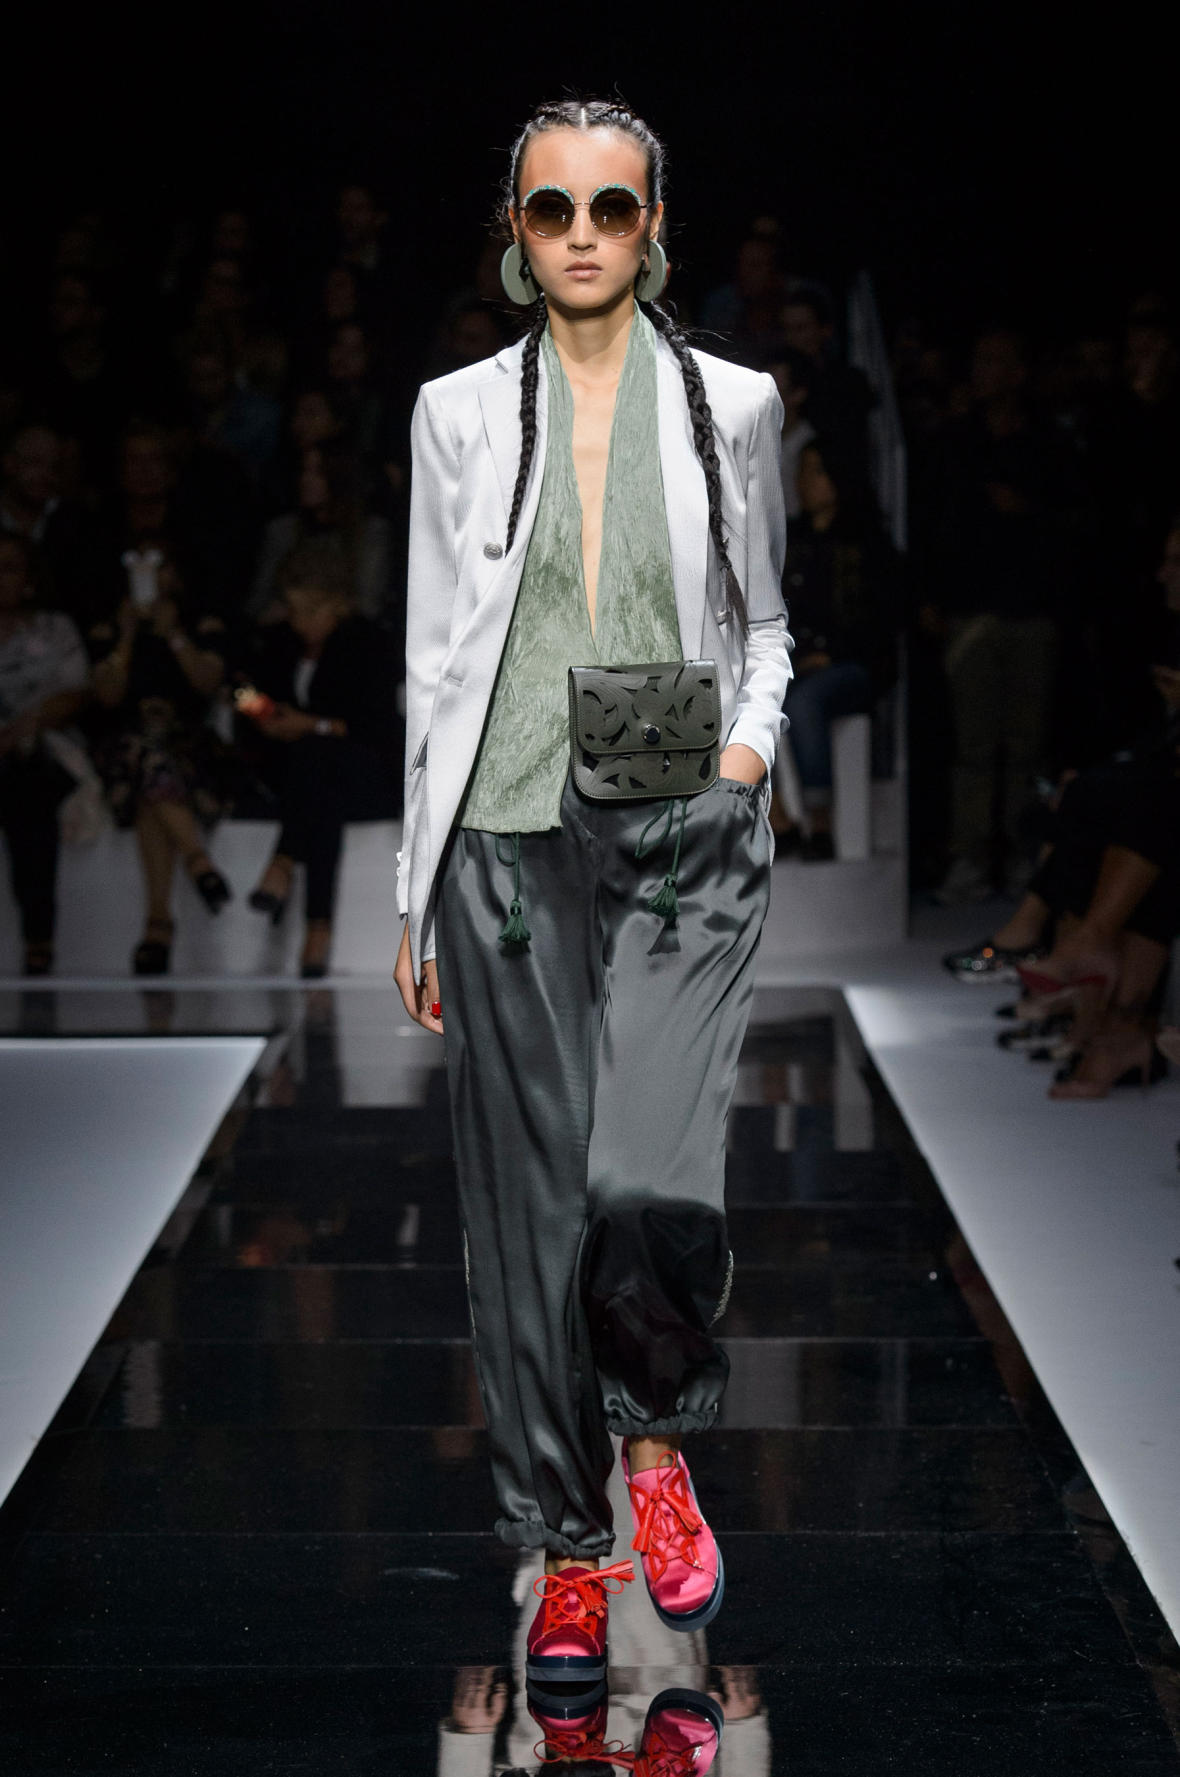 920c579d2d5 The elegant blue crush was a recurrent theme at Emporio Armani s runway show